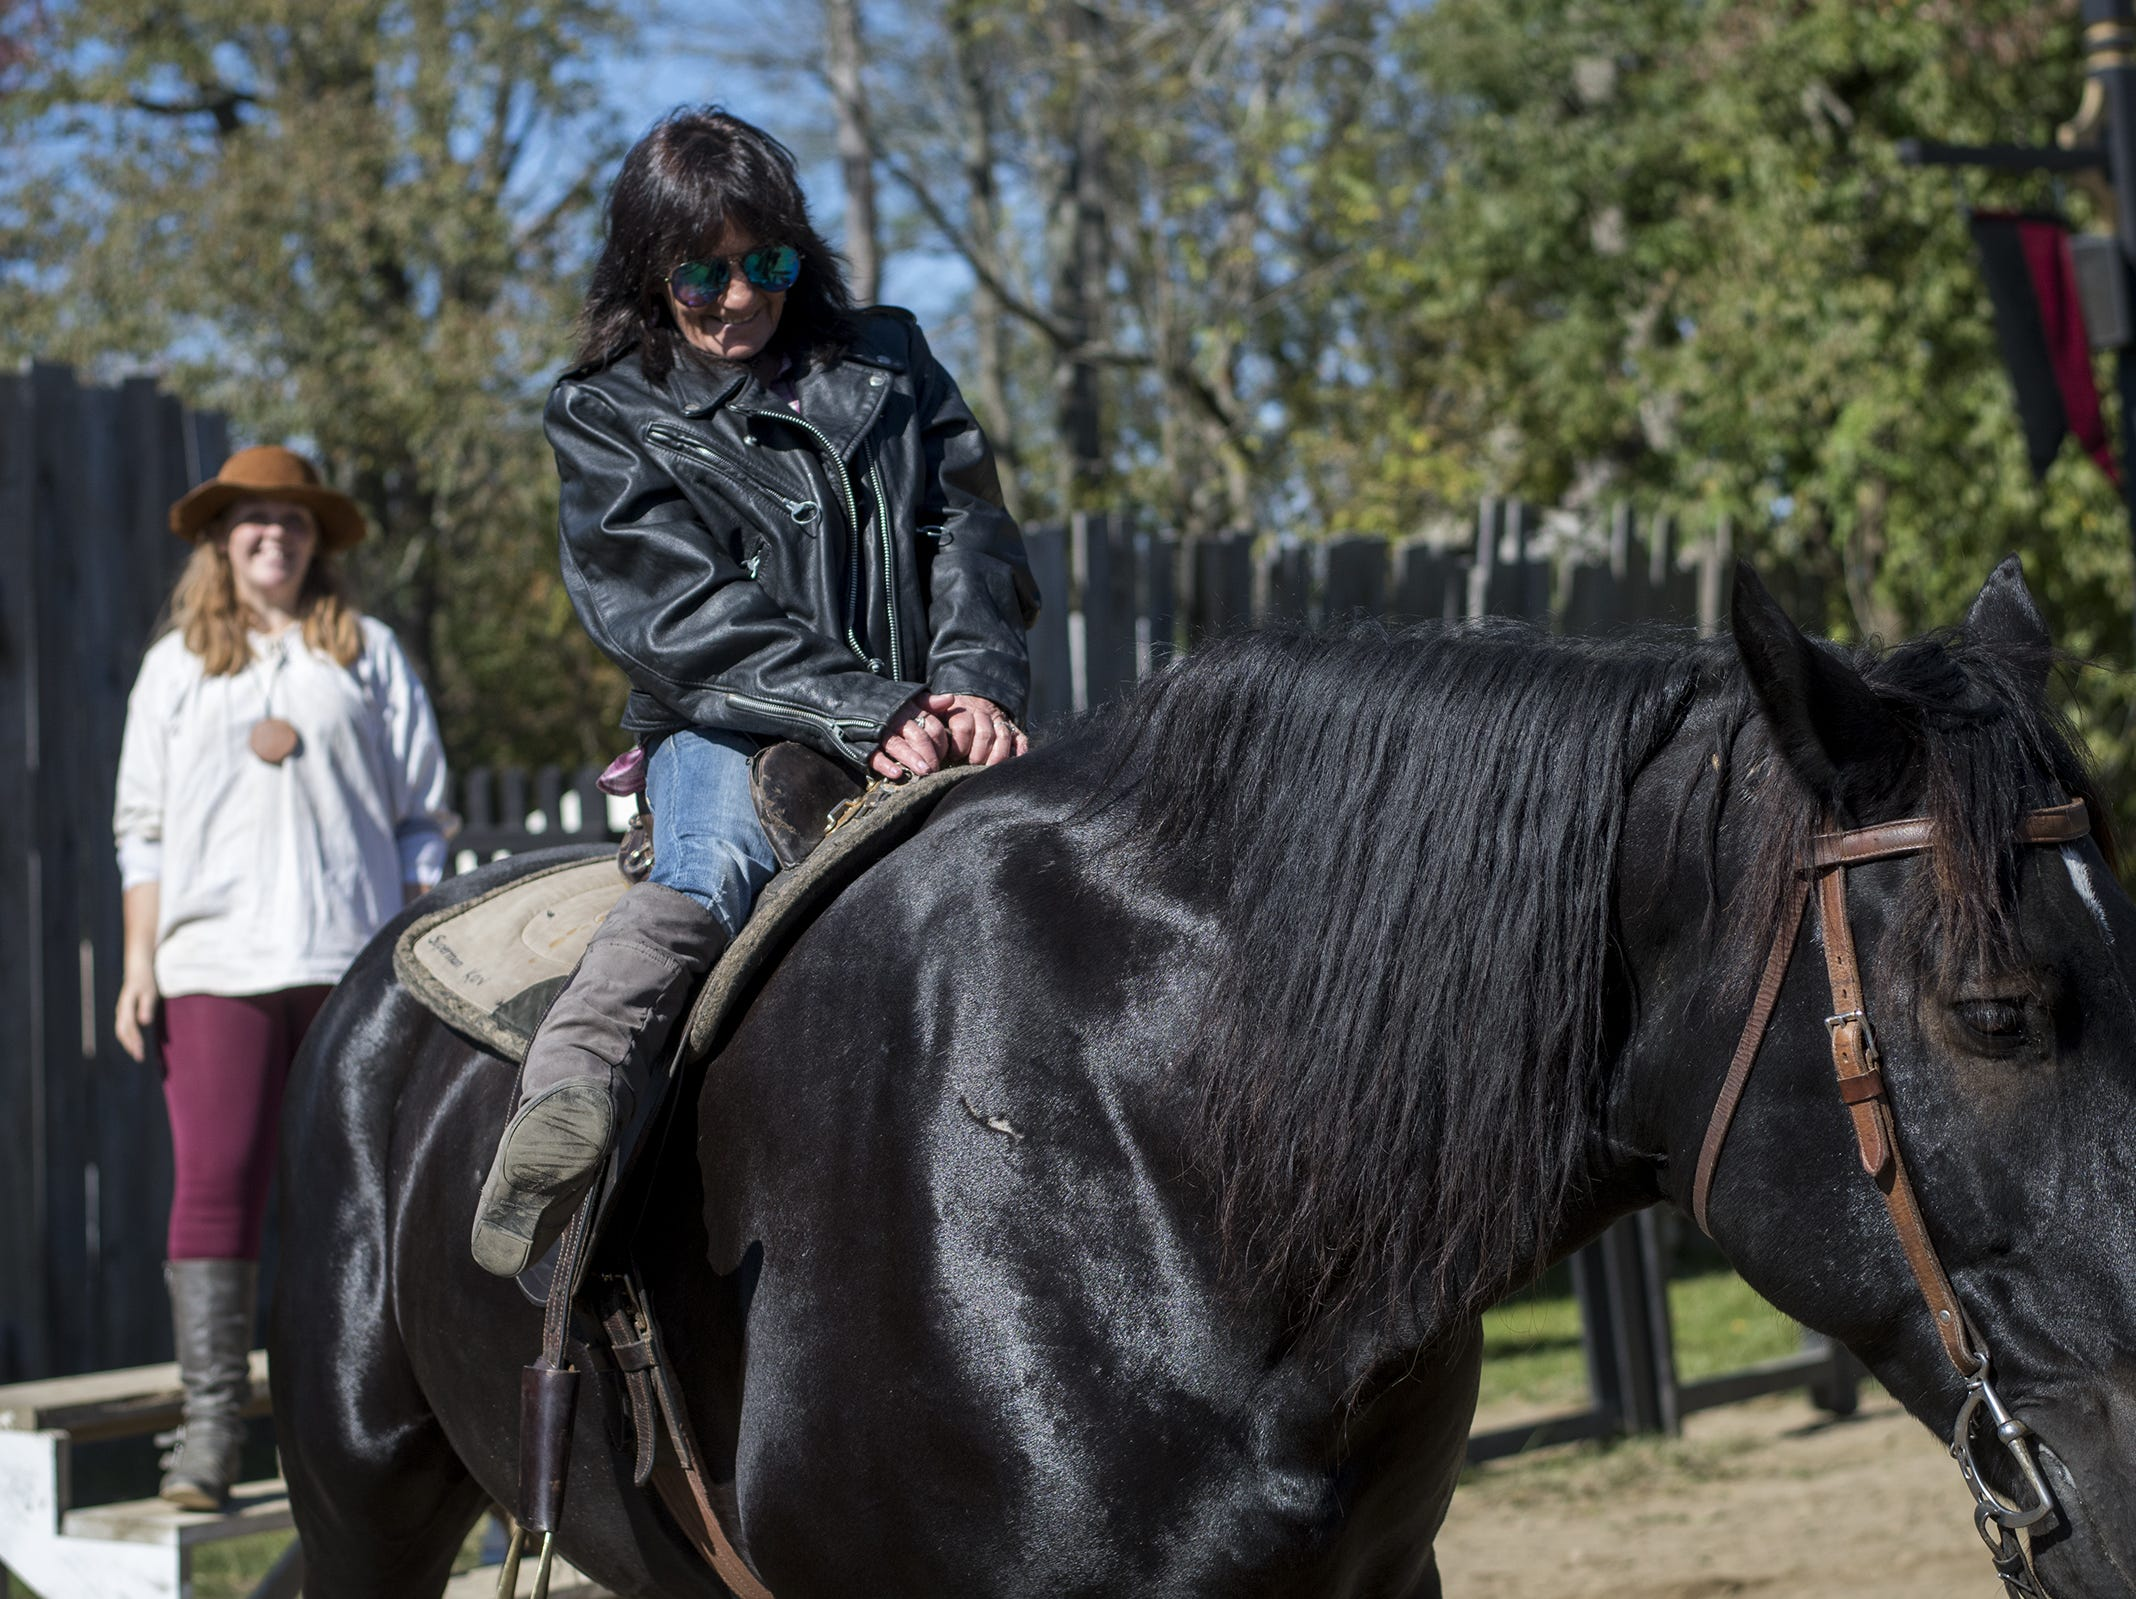 A festival-goer rides one of the knight's horses during Romance Weekend at the Ohio Renaissance Festival Sunday, October 21, 2018 in Waynesville, Ohio.